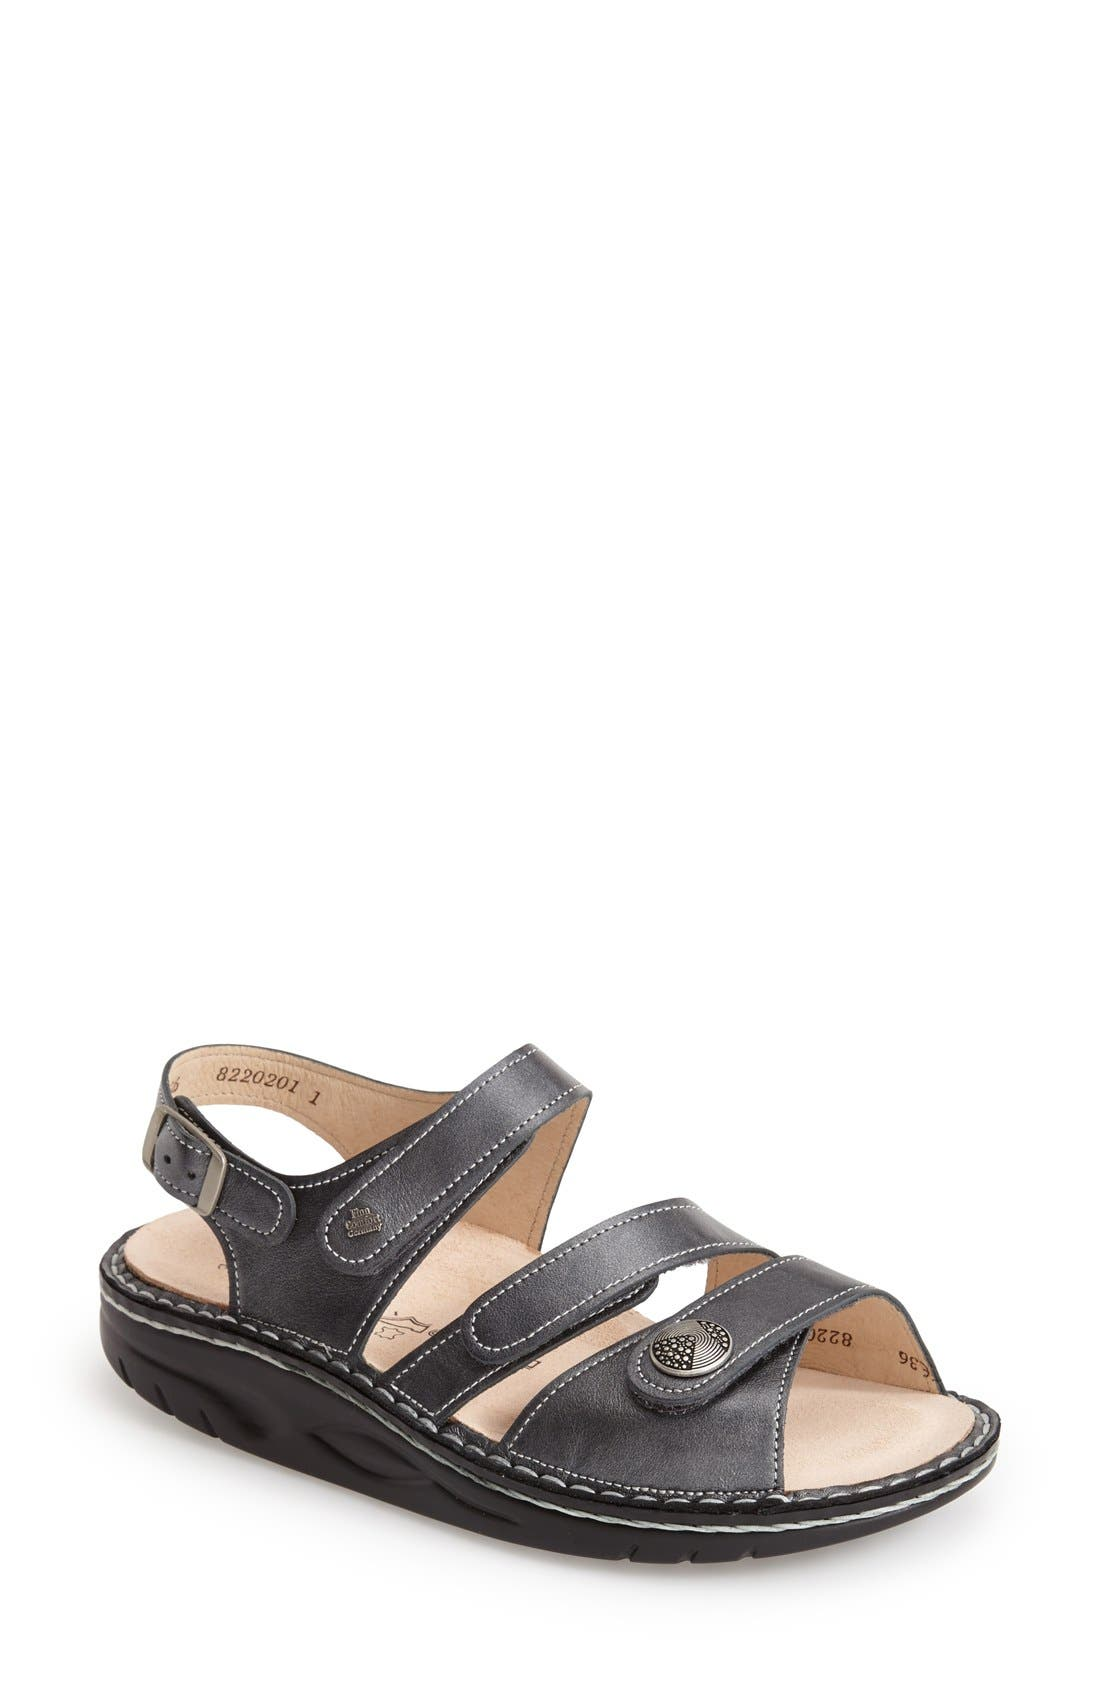 'Tiberias' Leather Sandal,                         Main,                         color, 020